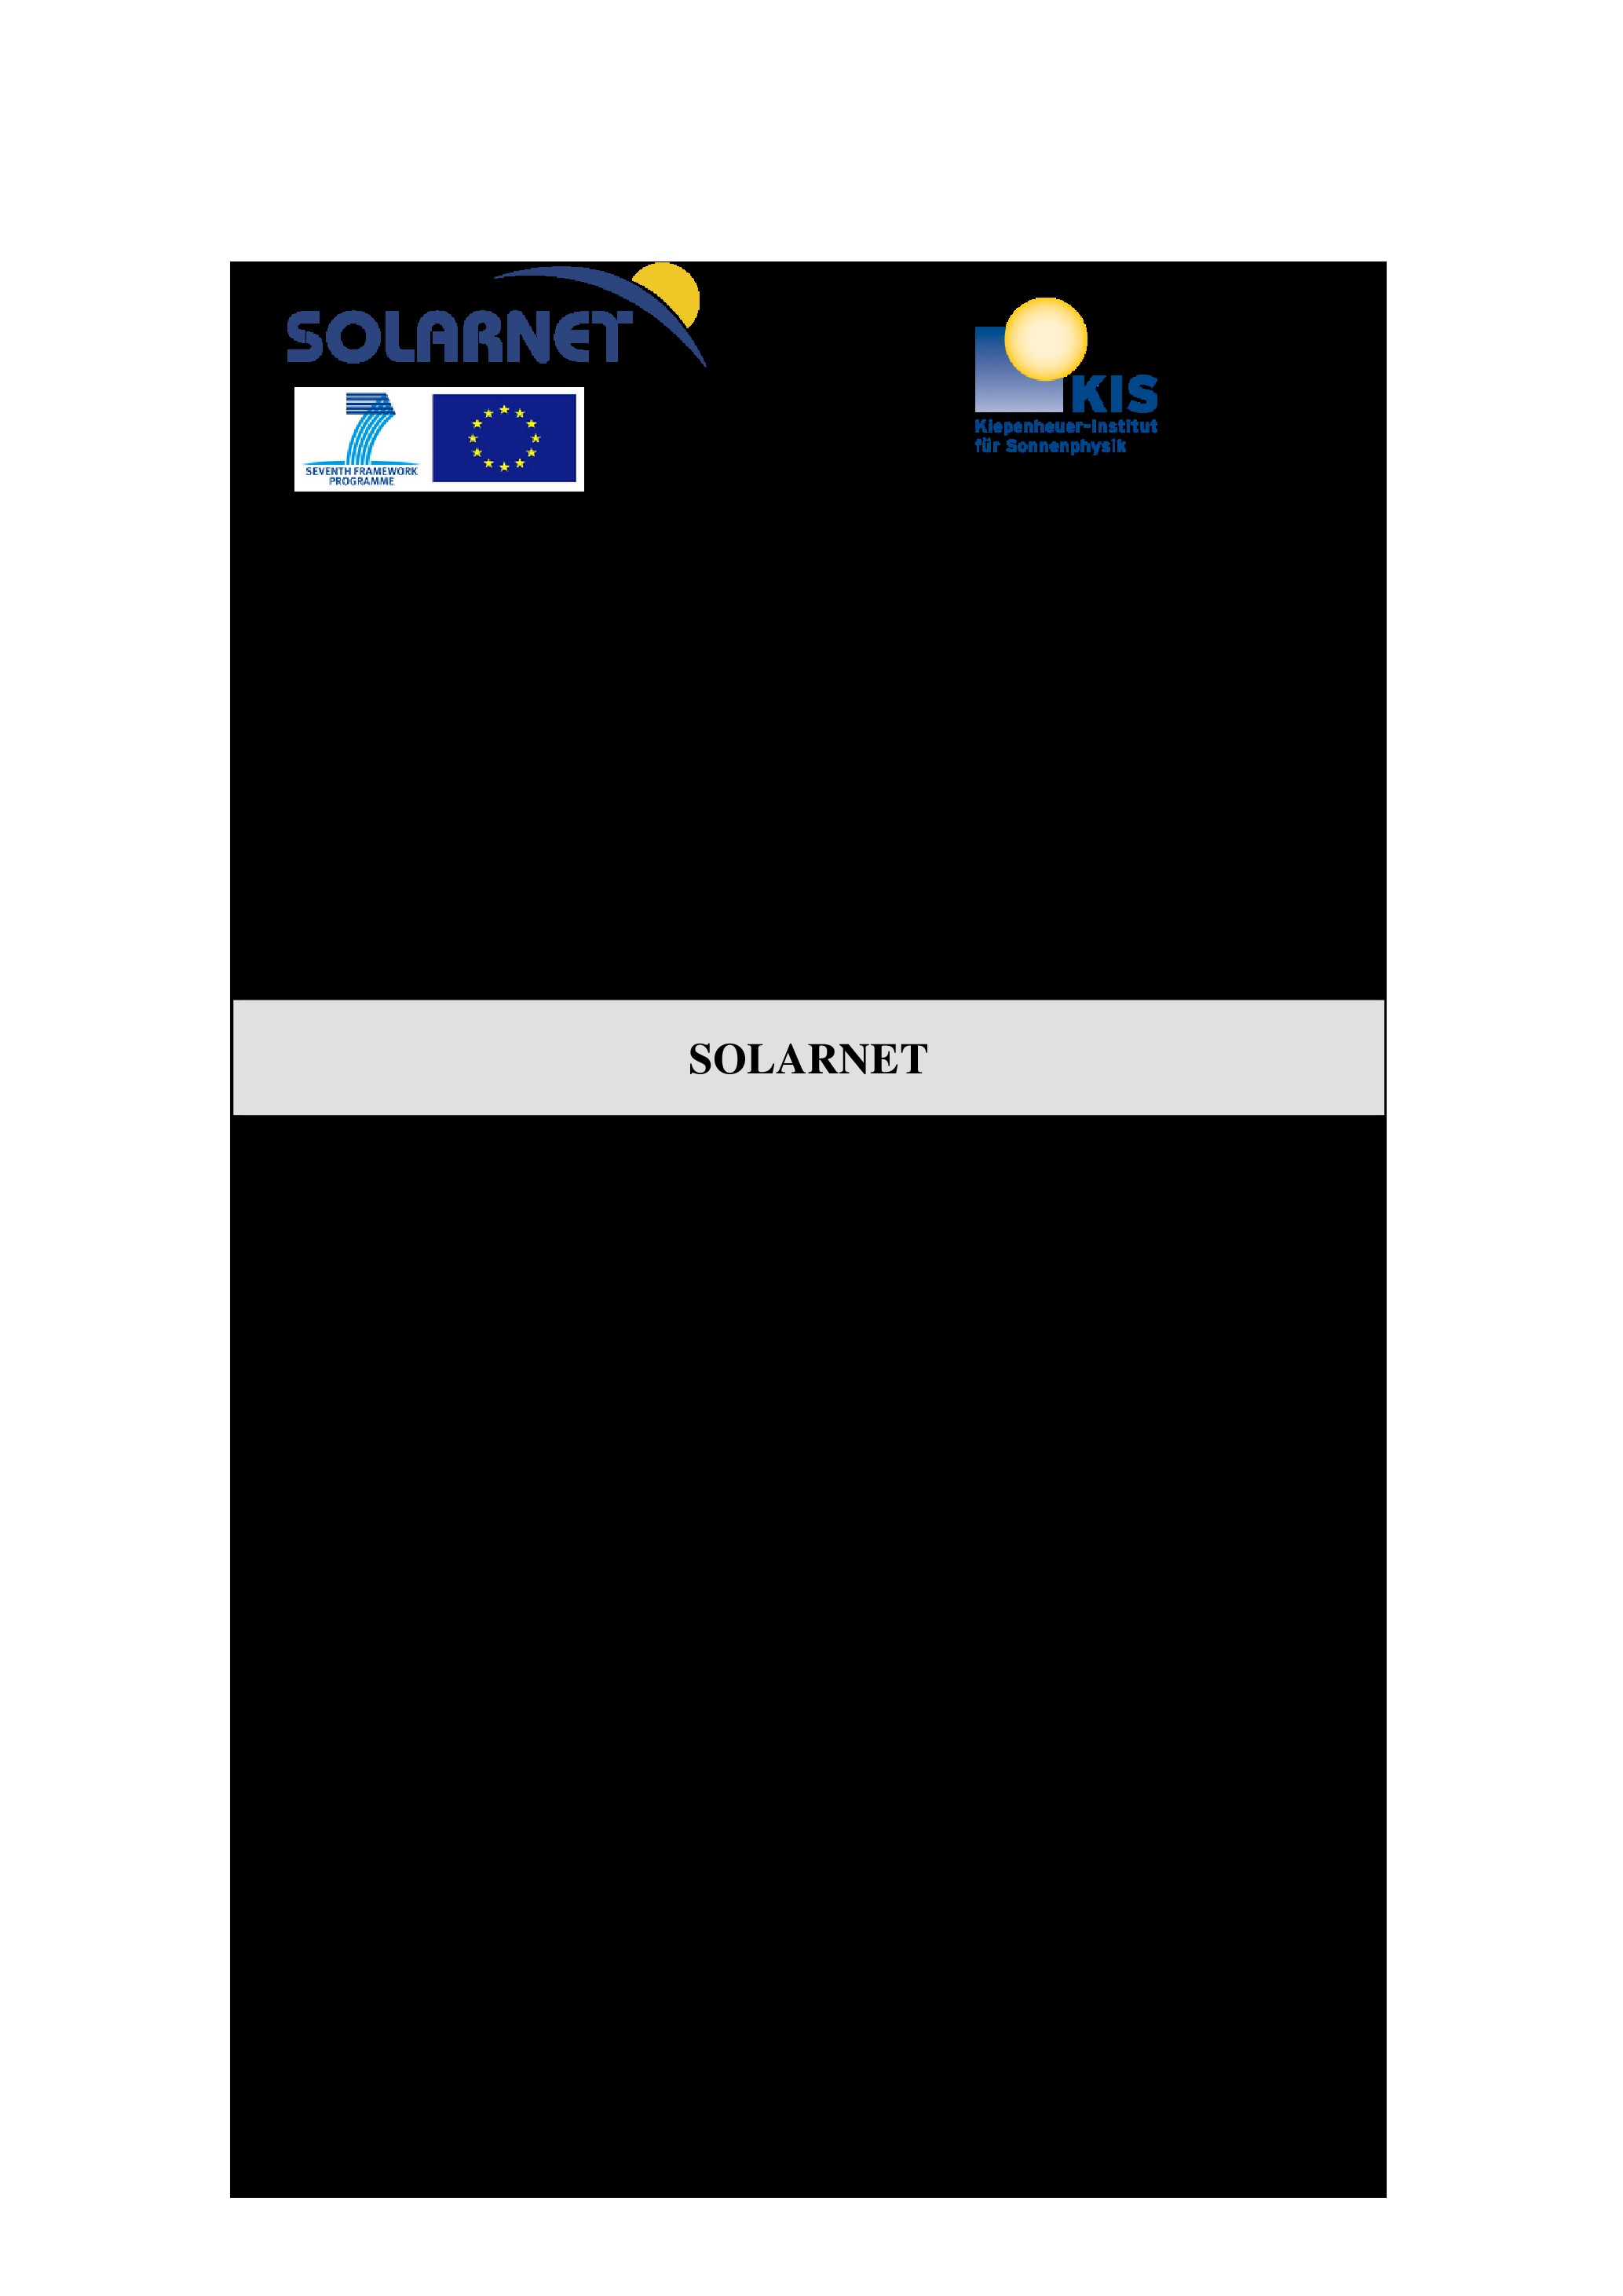 online banking sofware requirements specification Abstract: the content and qualities of a good software requirements specification (srs) are de-scribed and several sample srs outlines are presented.